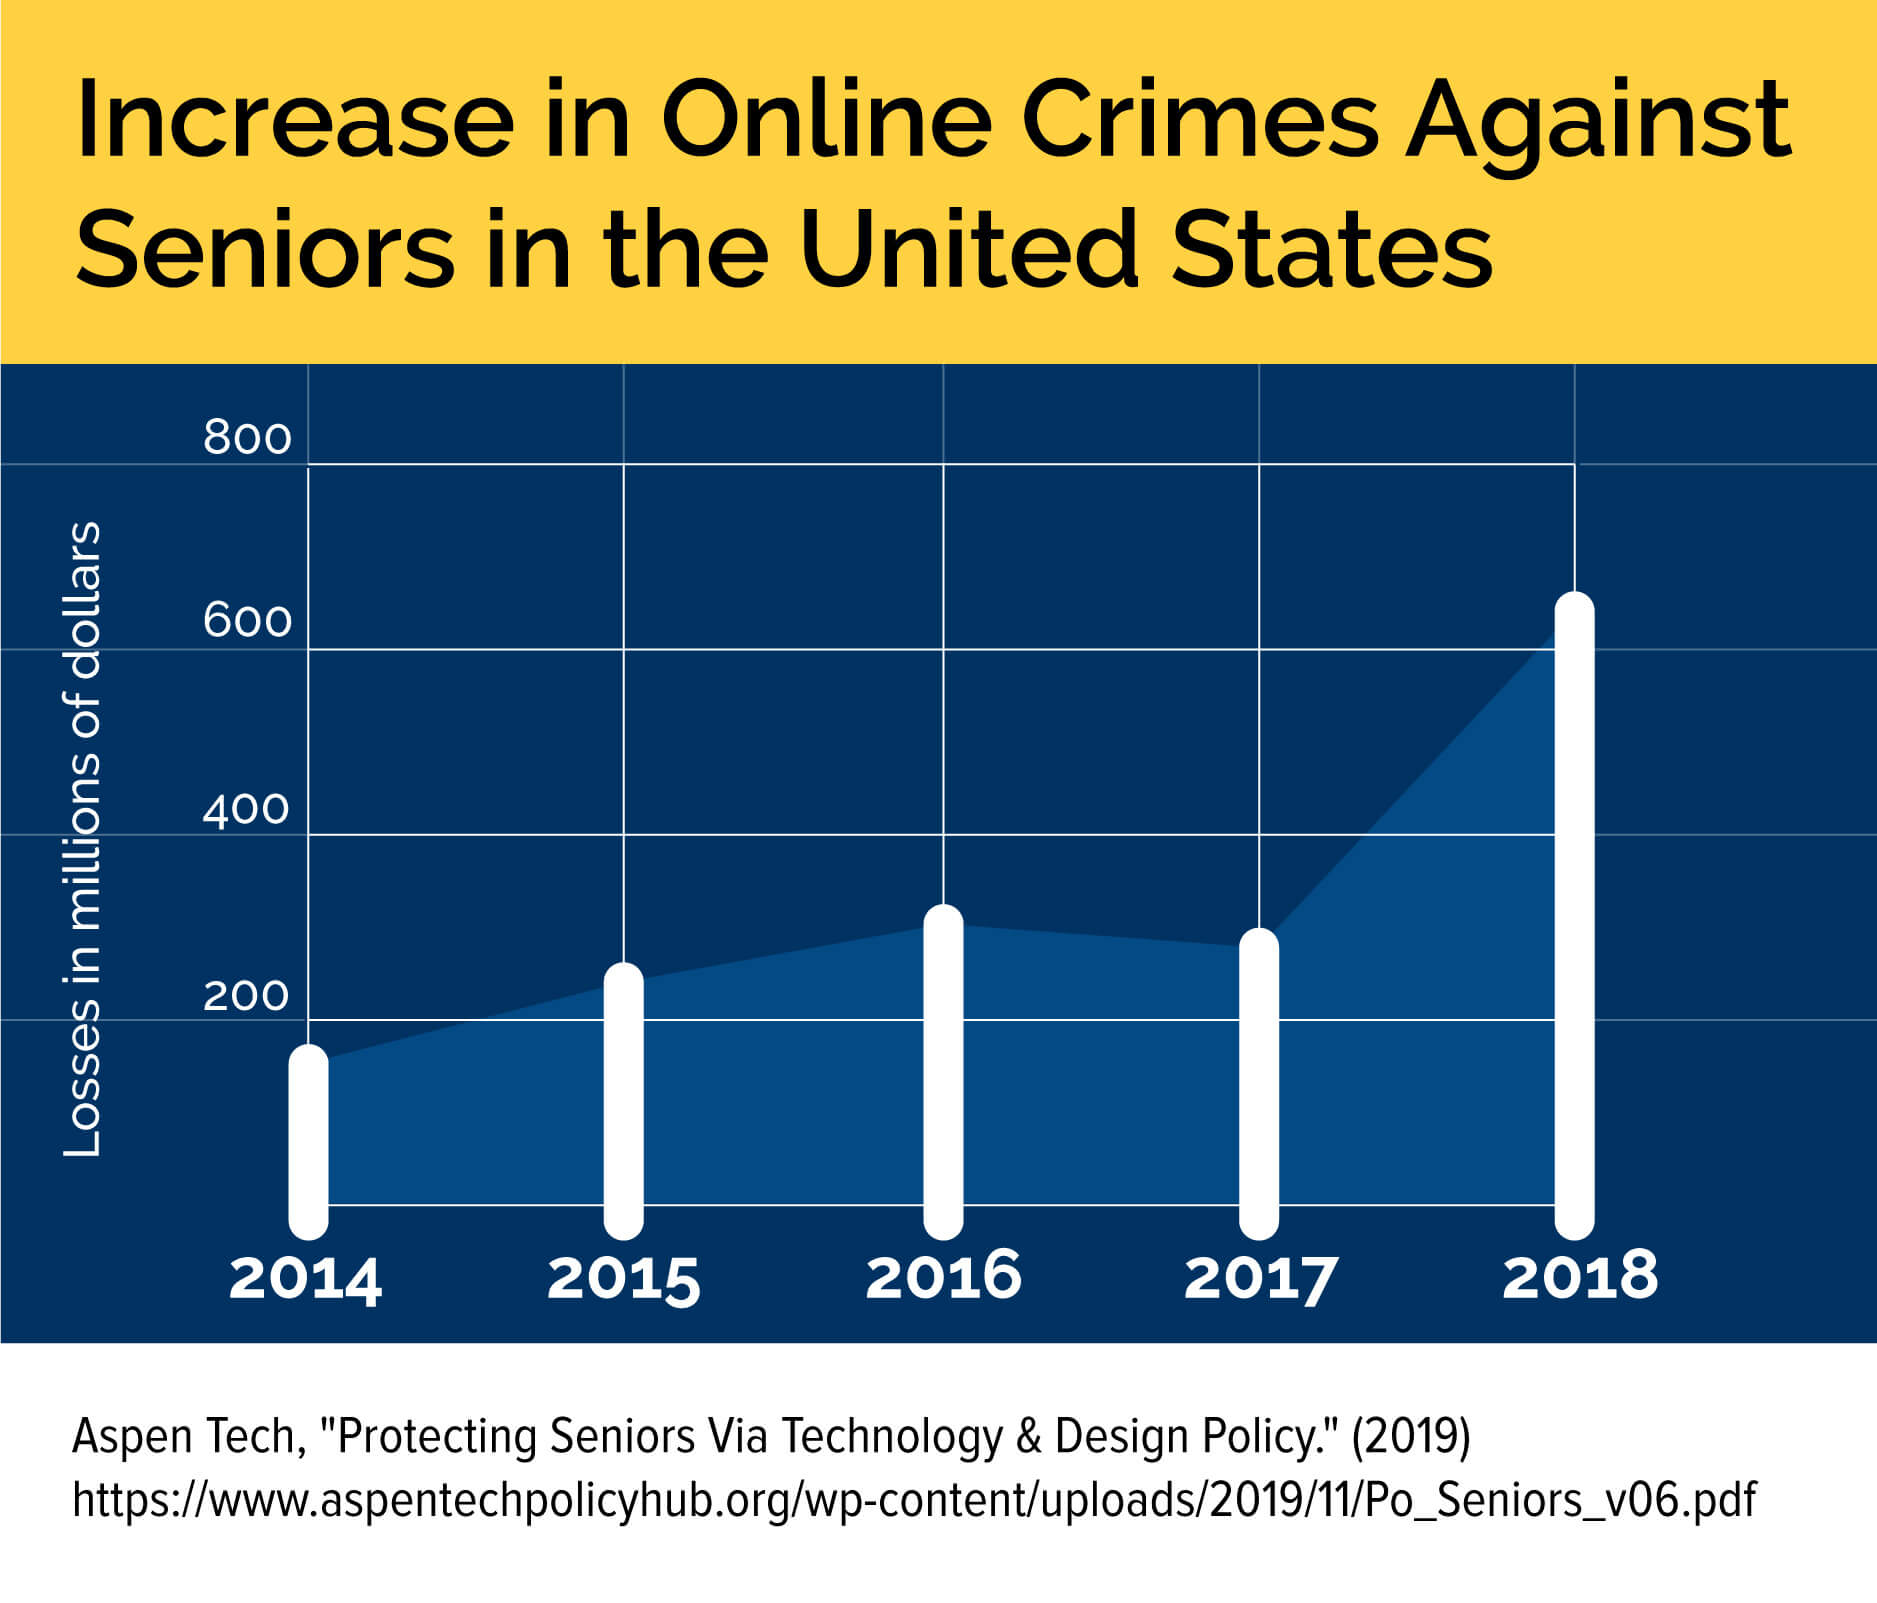 A graph showing the recent increase in online crimes against older adults in the United States.